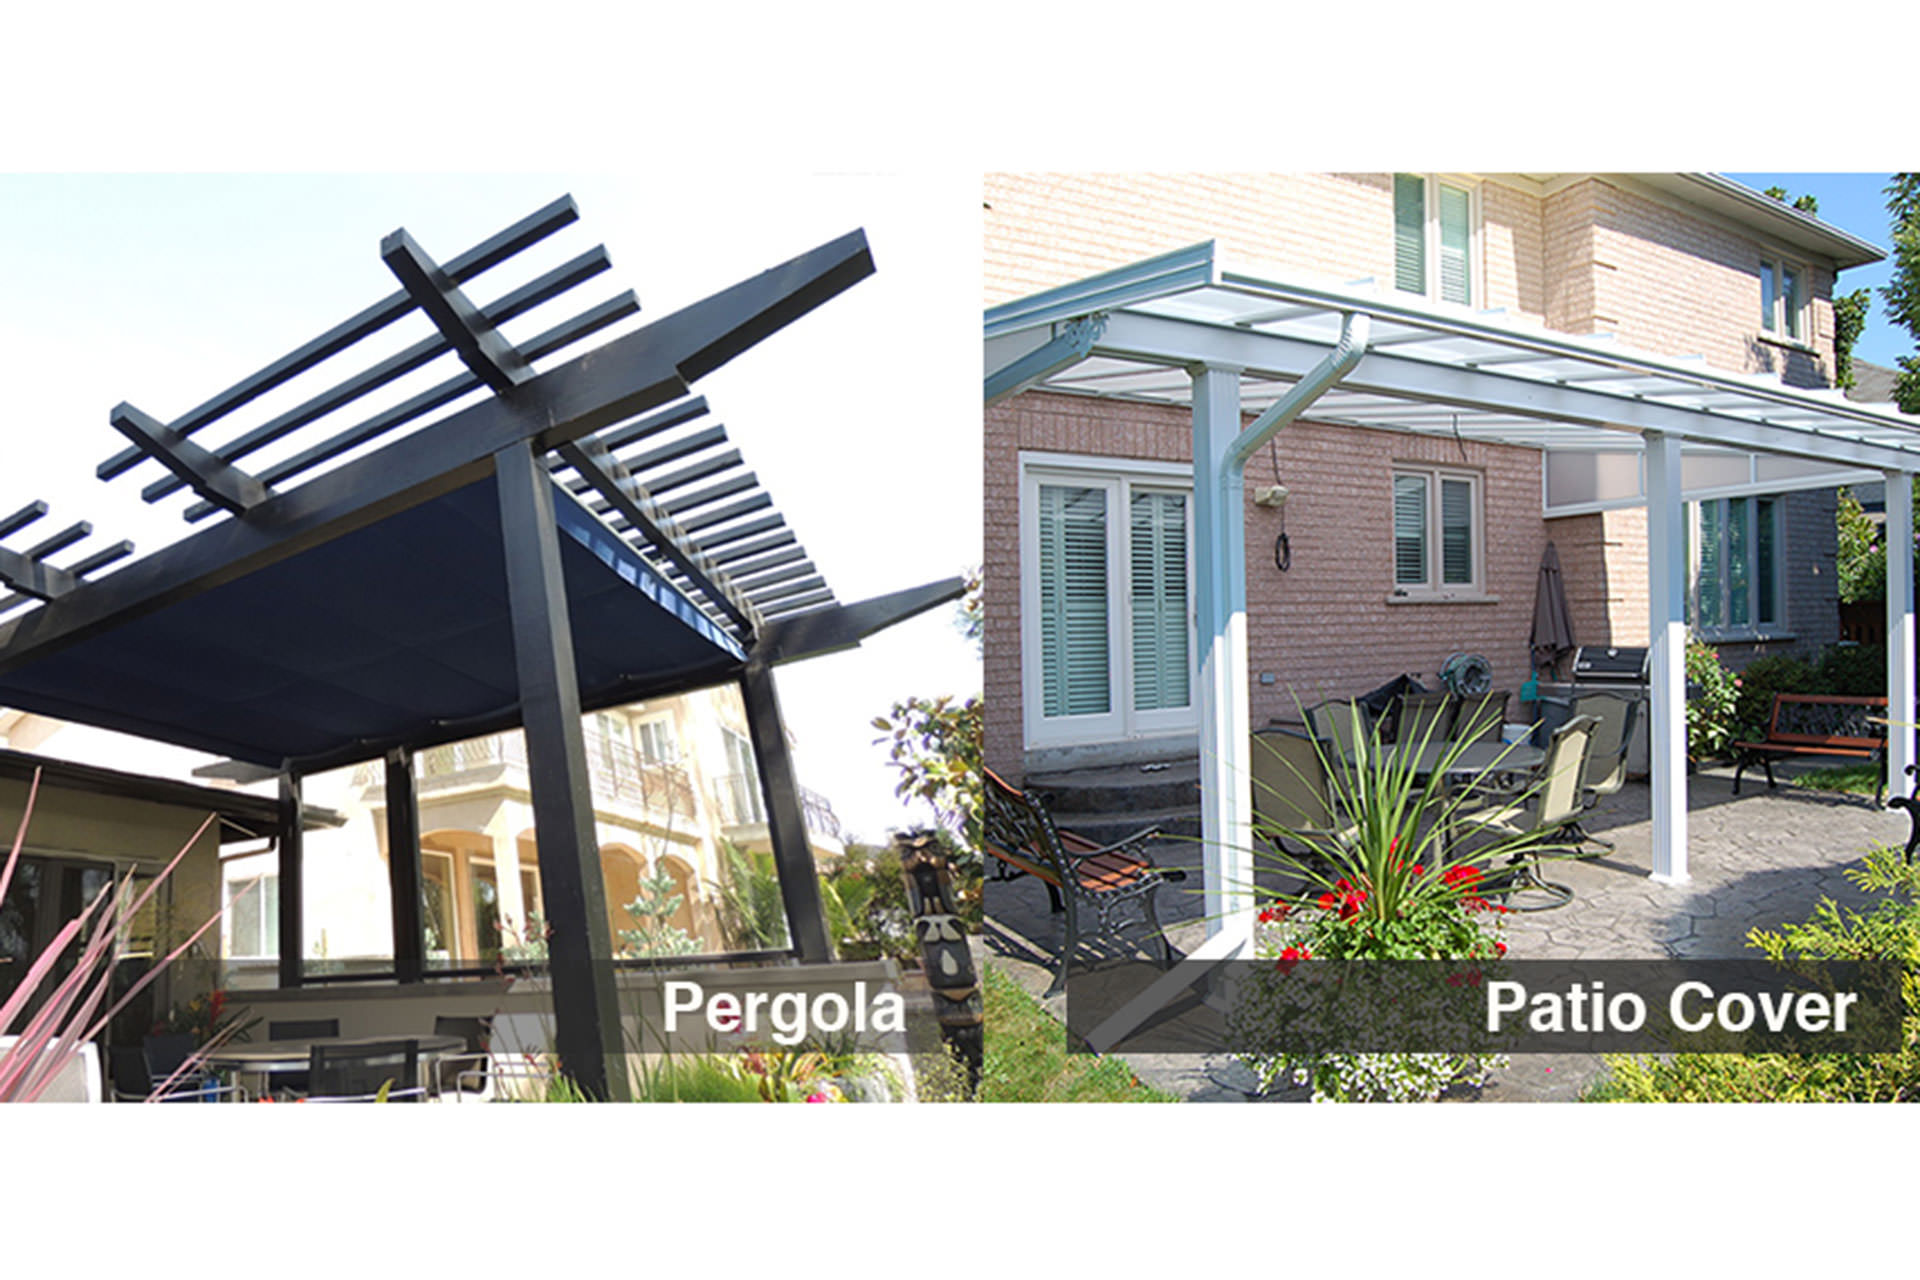 Pergolas or Patio Covers  sc 1 st  ShadeFX Canopies & Pergolas or Patio Covers: How to Choose The Right Shade Solution